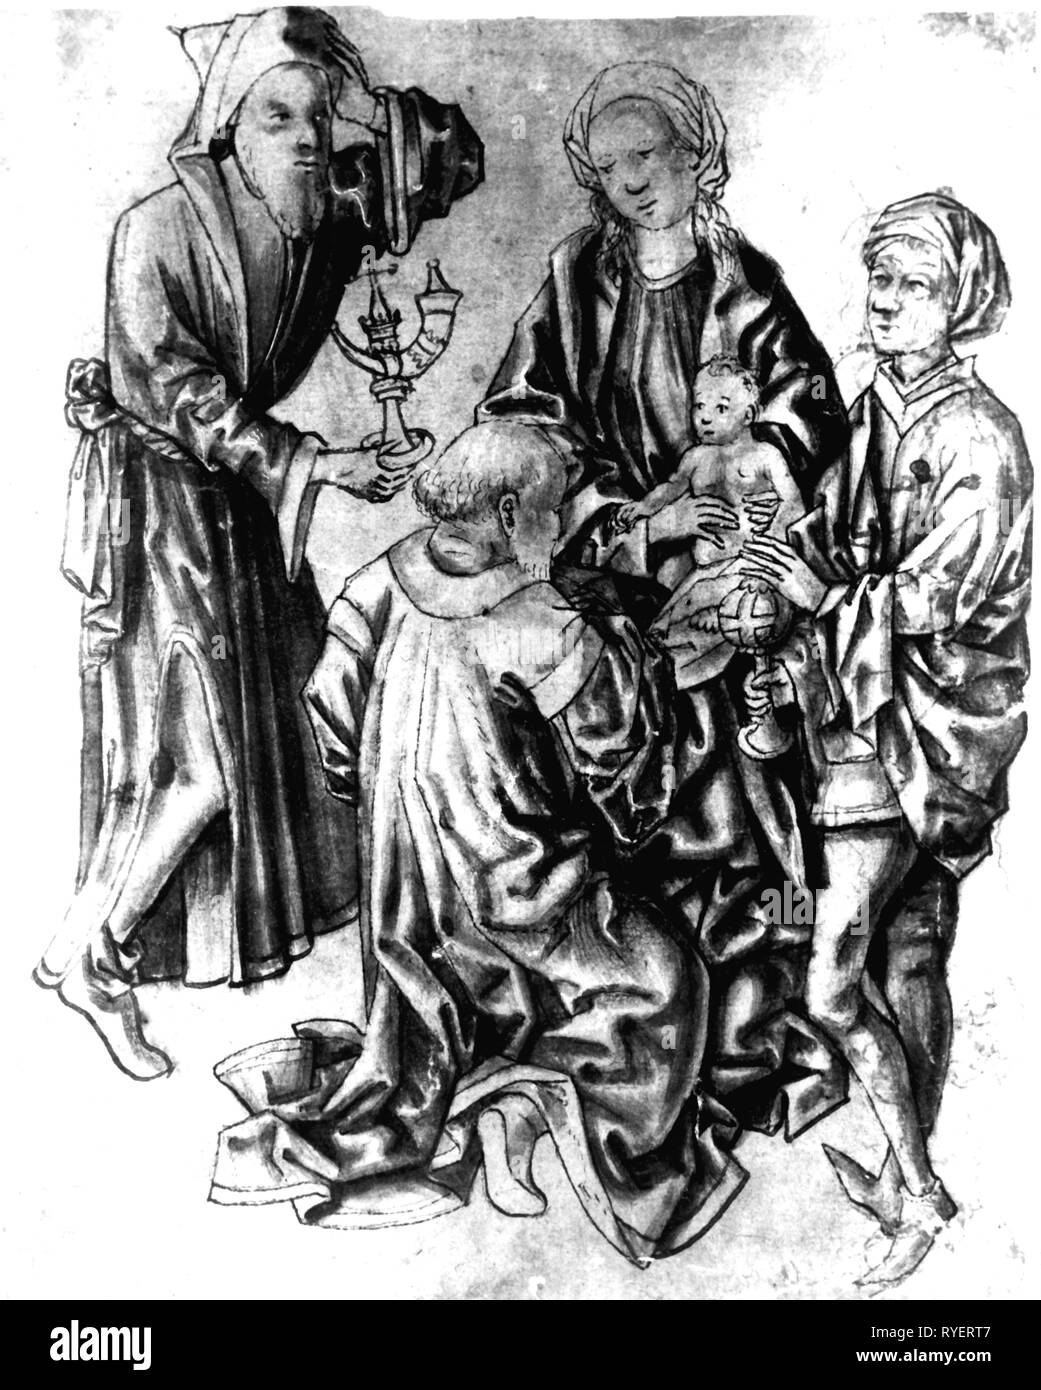 religion, Christianity, Three Kings, 'Adoration of the Magi', drawing, Germany, 15th century, 19.5 x 15.8 cm, State Graphics Collection, Munich, Middle Ages, medieval, mediaeval, graphics, half-length, half length, sitting, sit, kneel, kneeling, Mary, Madonna, Jesus Christ, the infant Jesus, baby Jesus, divine infant, child, children, kid, kids, Kaspar, Melchior, Balthazar, nativity, nativities, Messiah, Saviour, Redeemer, holding, hold, present, presents, gold, incense, frankincense, myrrh, worship, worships, religion, religions, king, kings, graphic,, Artist's Copyright has not to be cleared - Stock Image